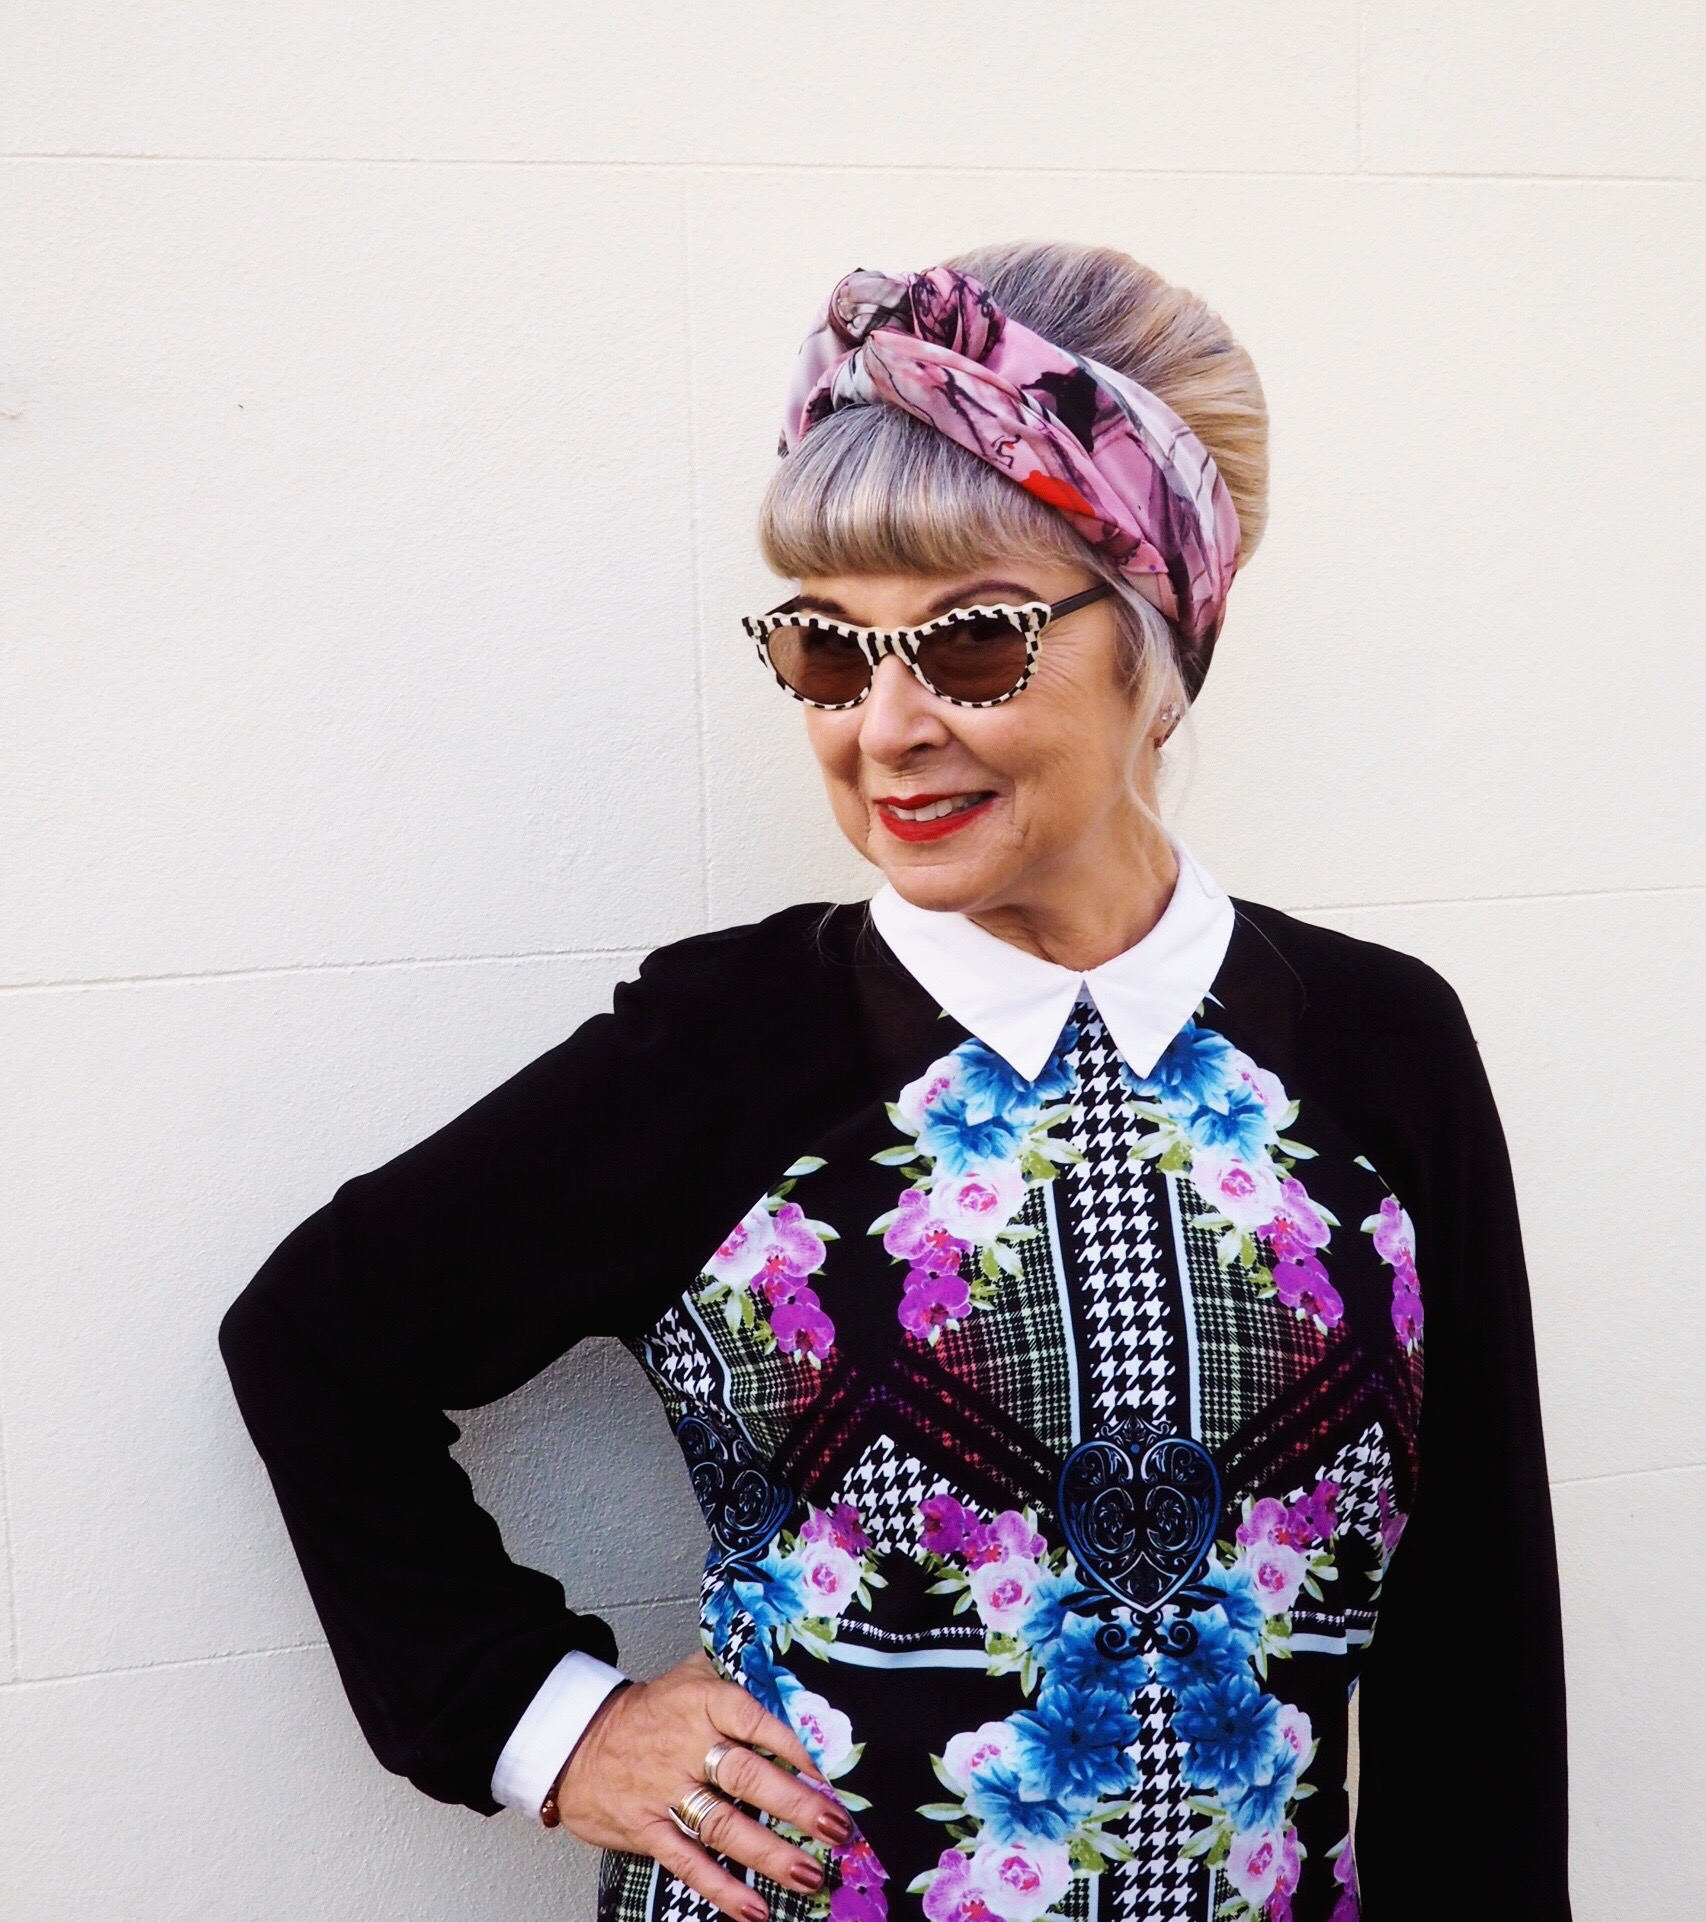 styling up an old dress with vintage sunnies & headscarf